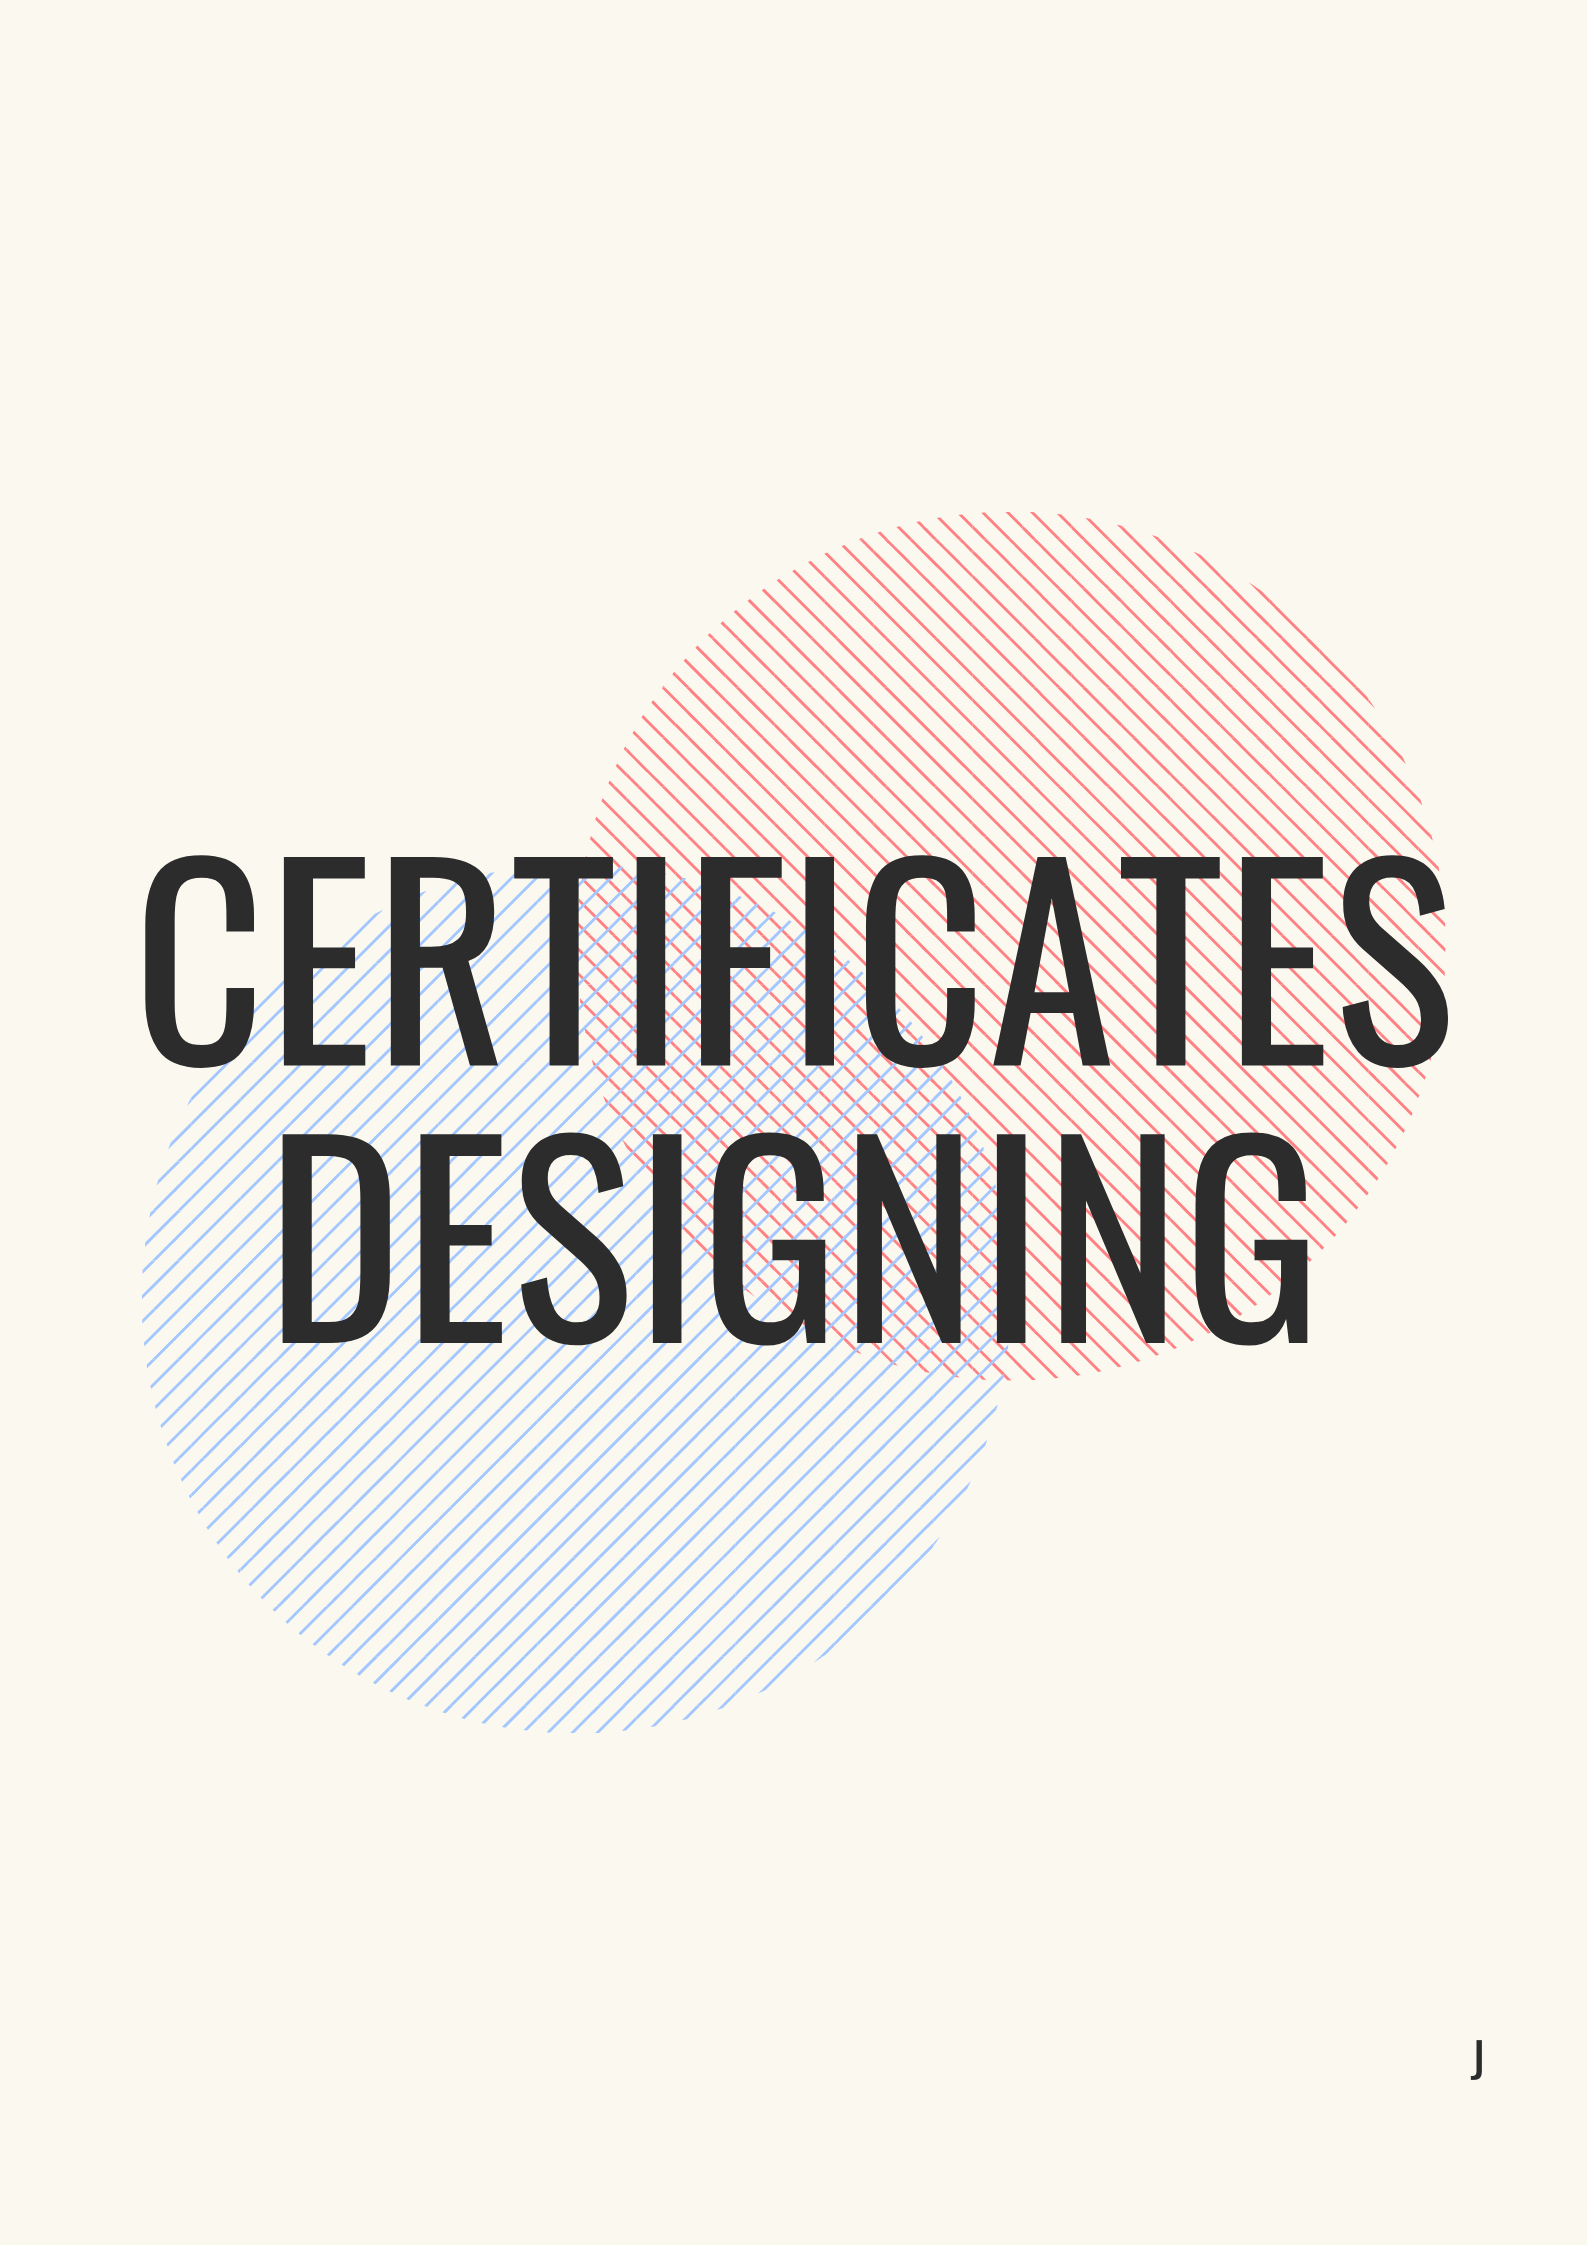 Quality certificates design in just 1 day